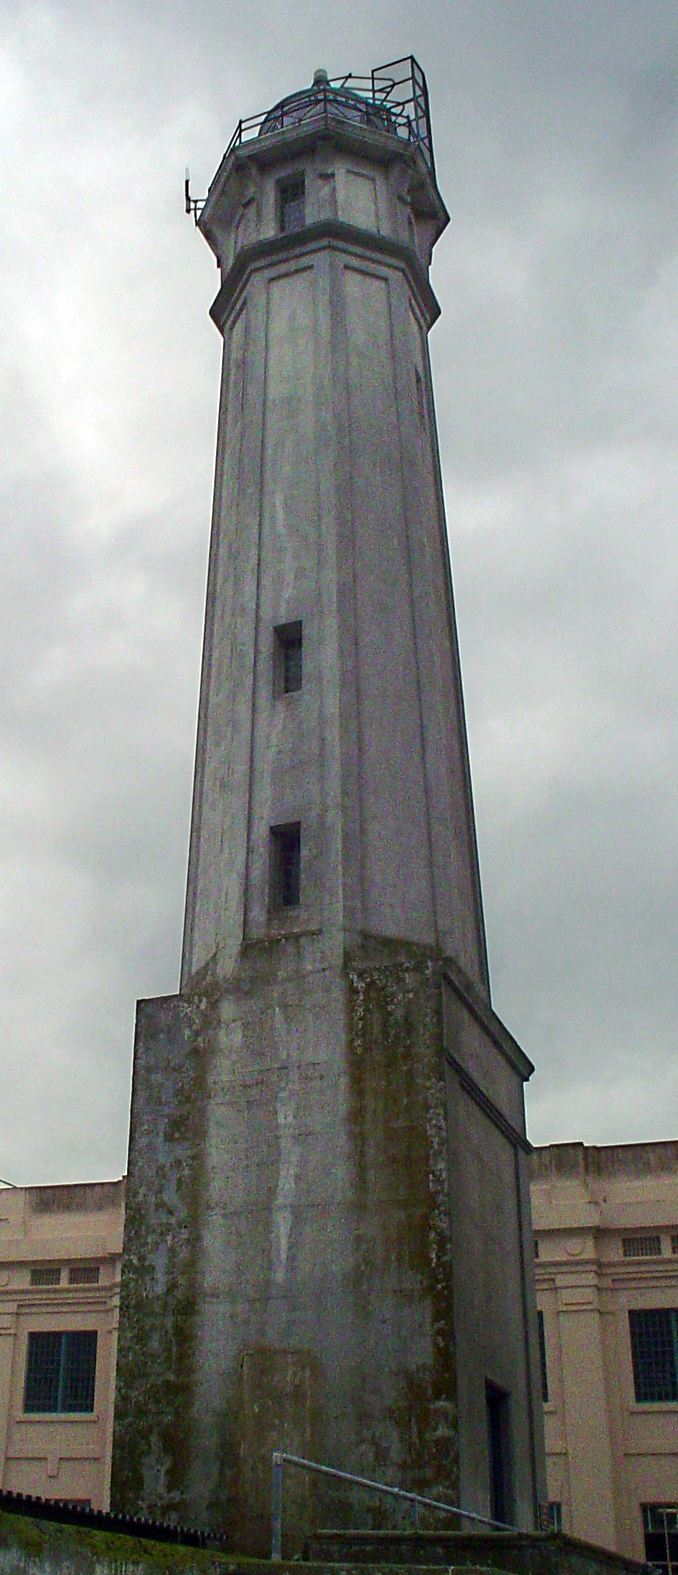 """The lighthouse tower adjacent to the prison cell house.   """"Alcatraz Island Lighthouse Tower"""" by Centpacrr (Digital image), Licensed under CC BY-SA 3.0 via Wikipedia."""